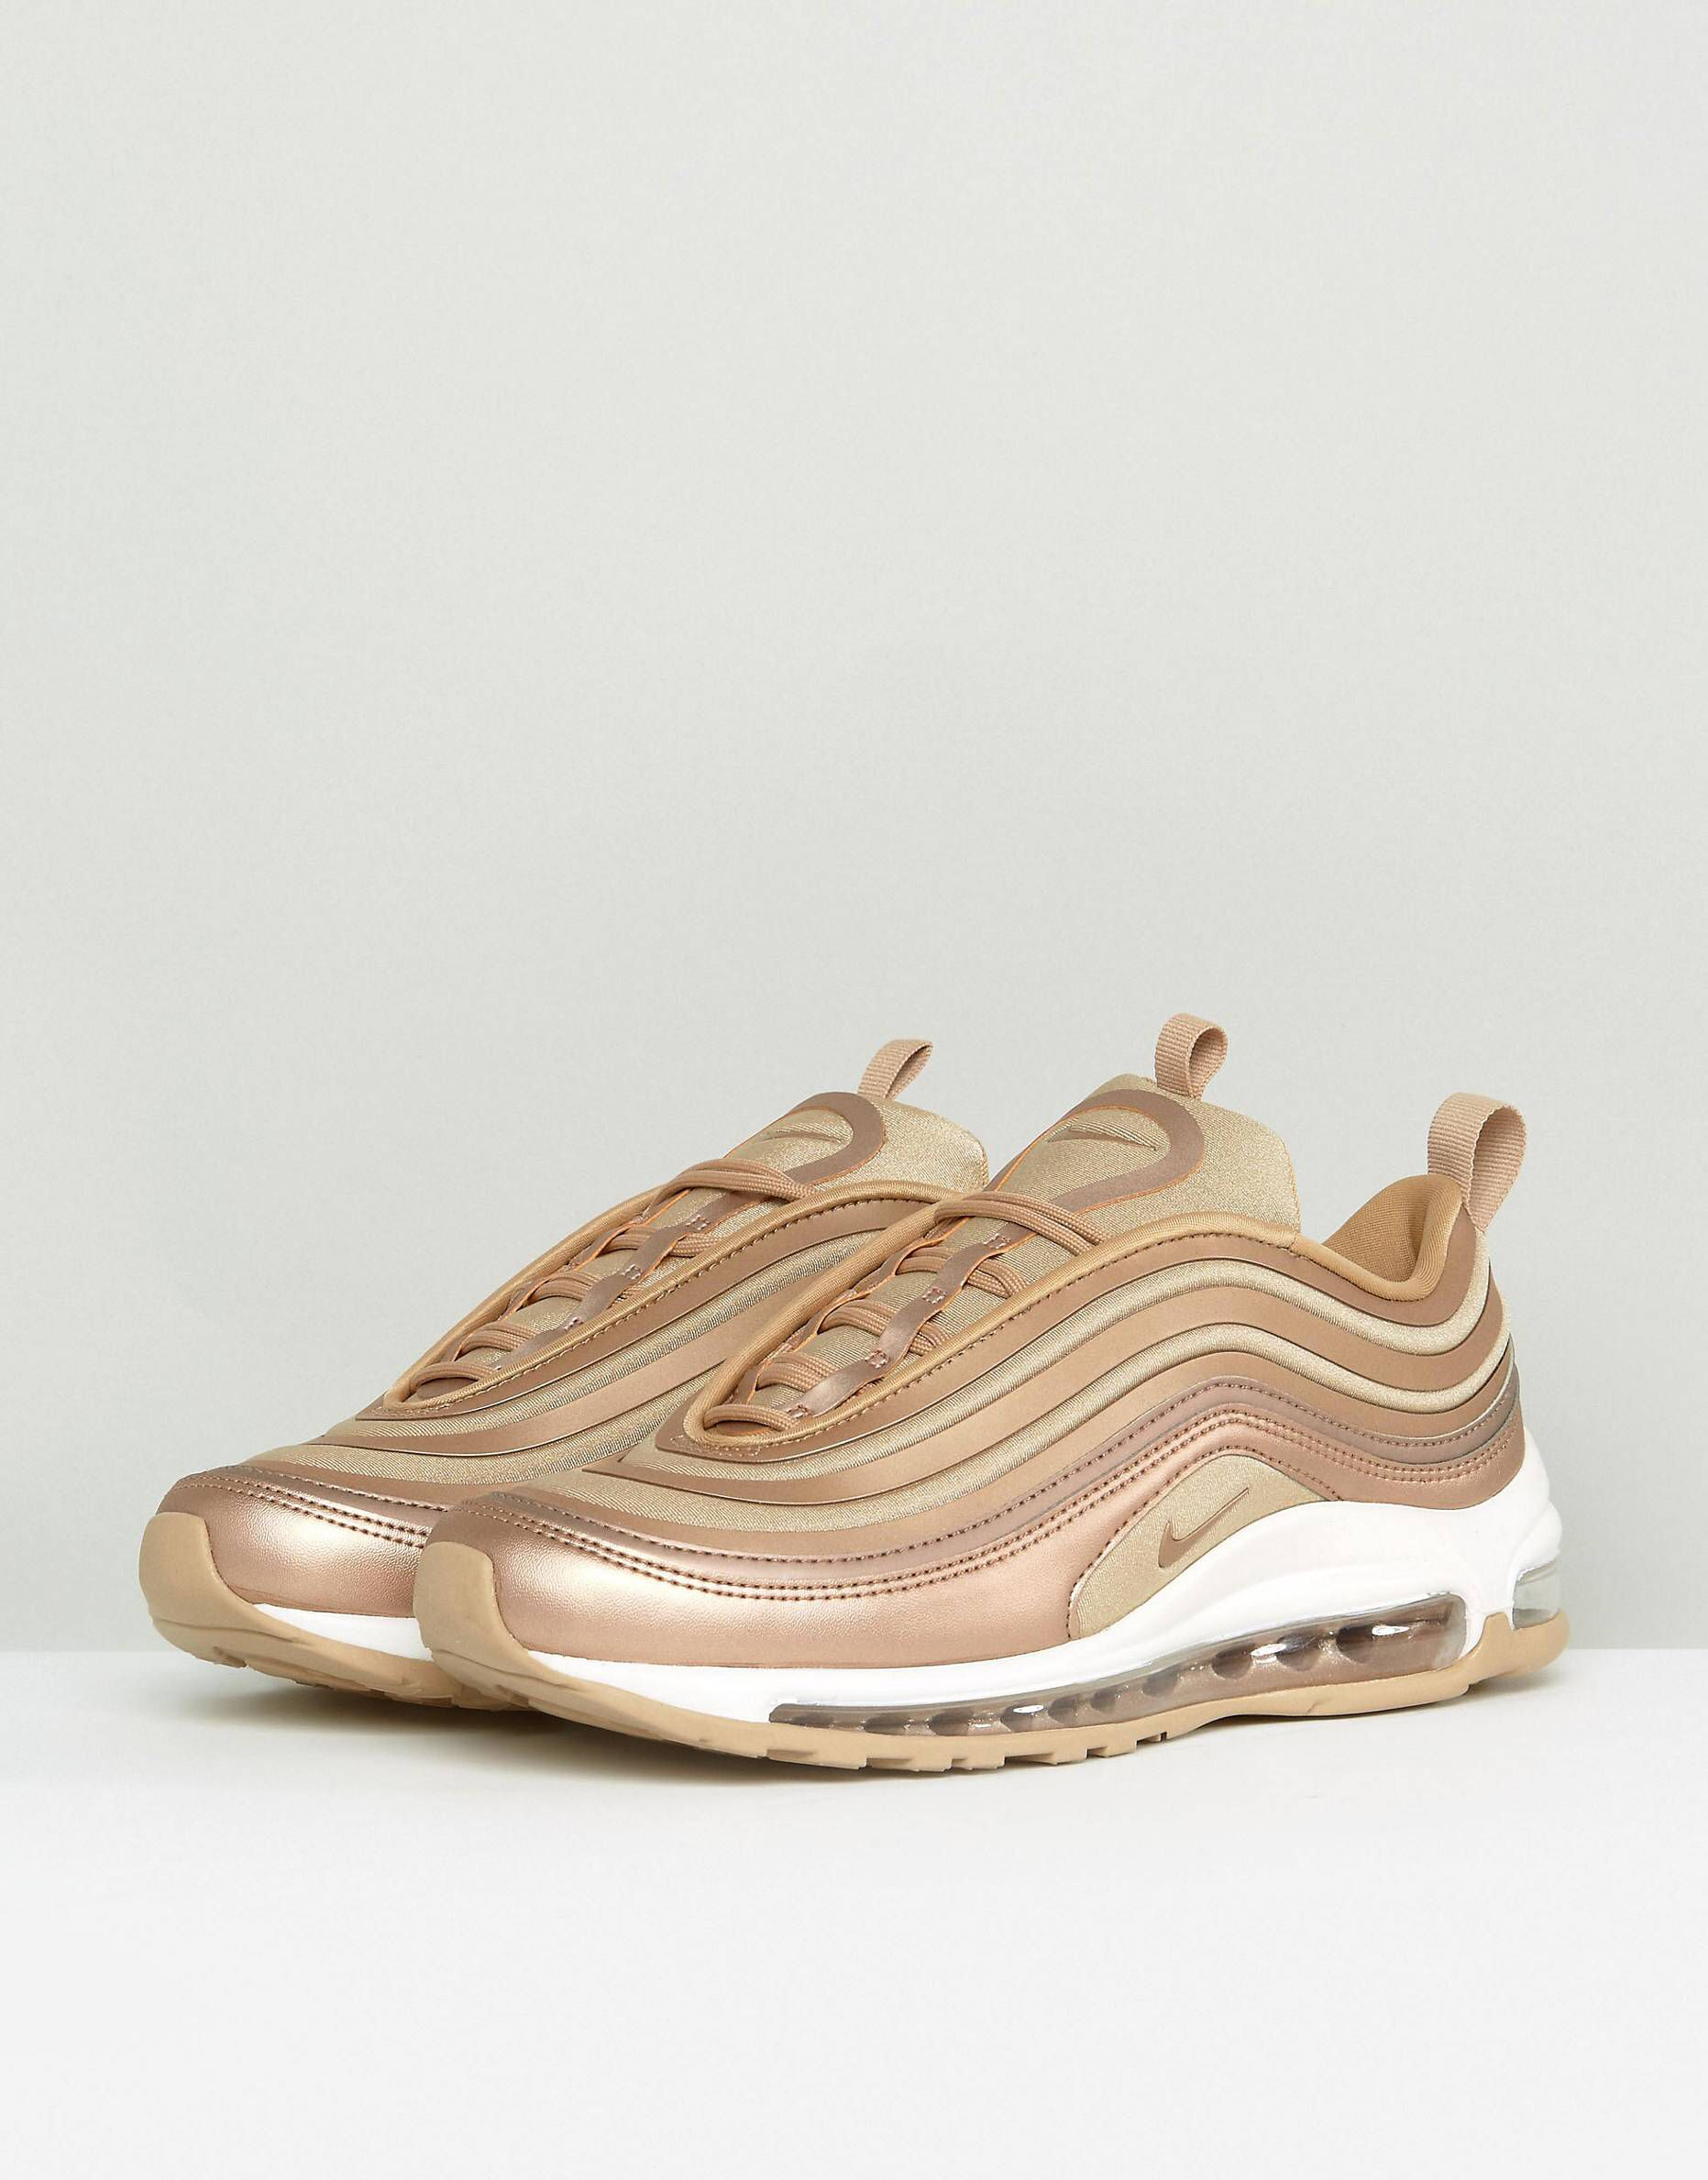 best cheap b9fb5 bc6ef Nike Air Max 97 Trainers In Metallic Cashmere | Sneaker ...